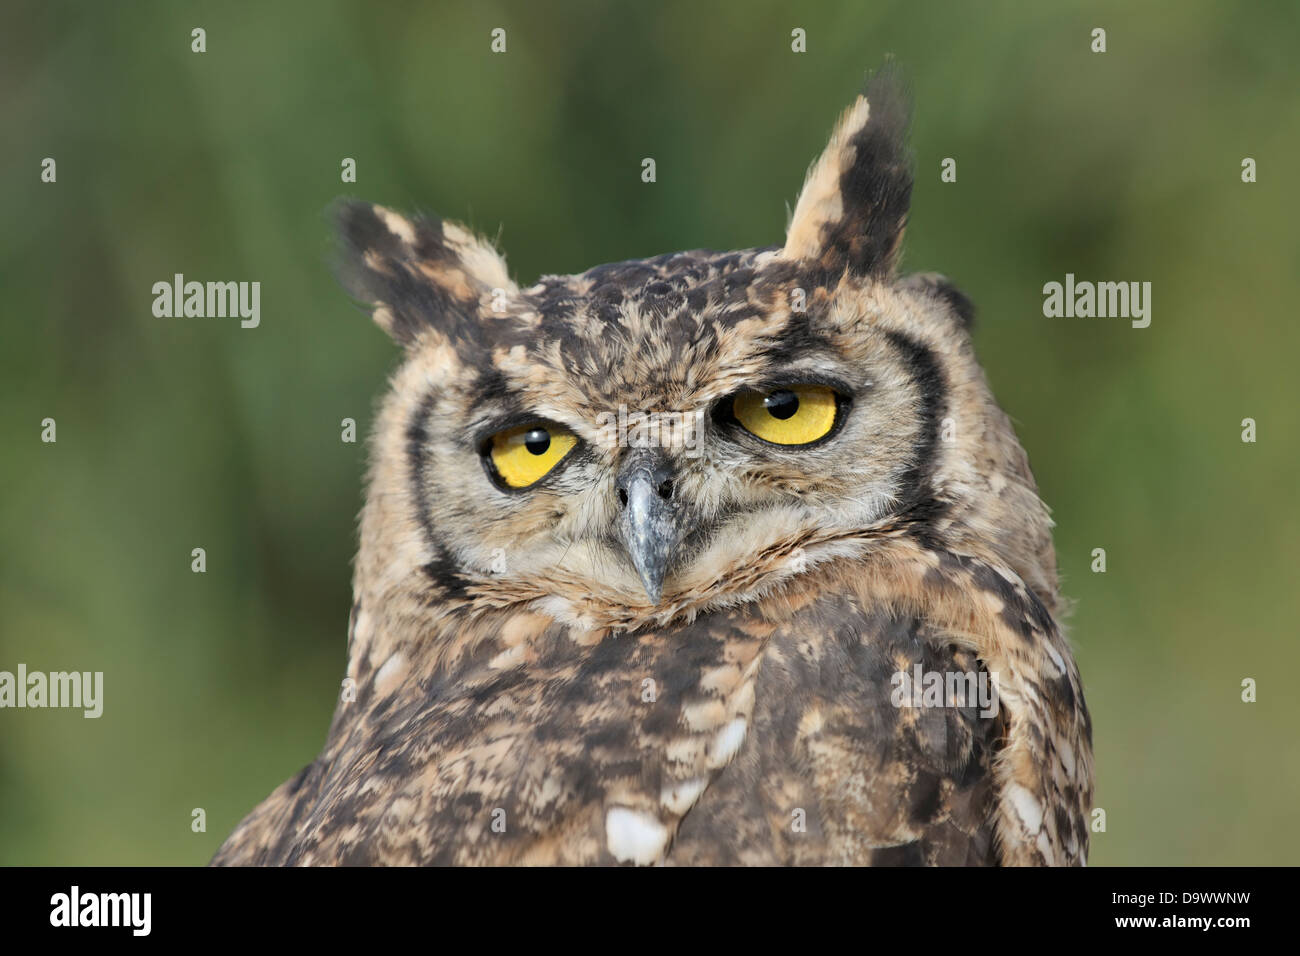 Portrait of an Eurasian Eagle Owl (Bubo bubo) close up, looking at camera. - Stock Image